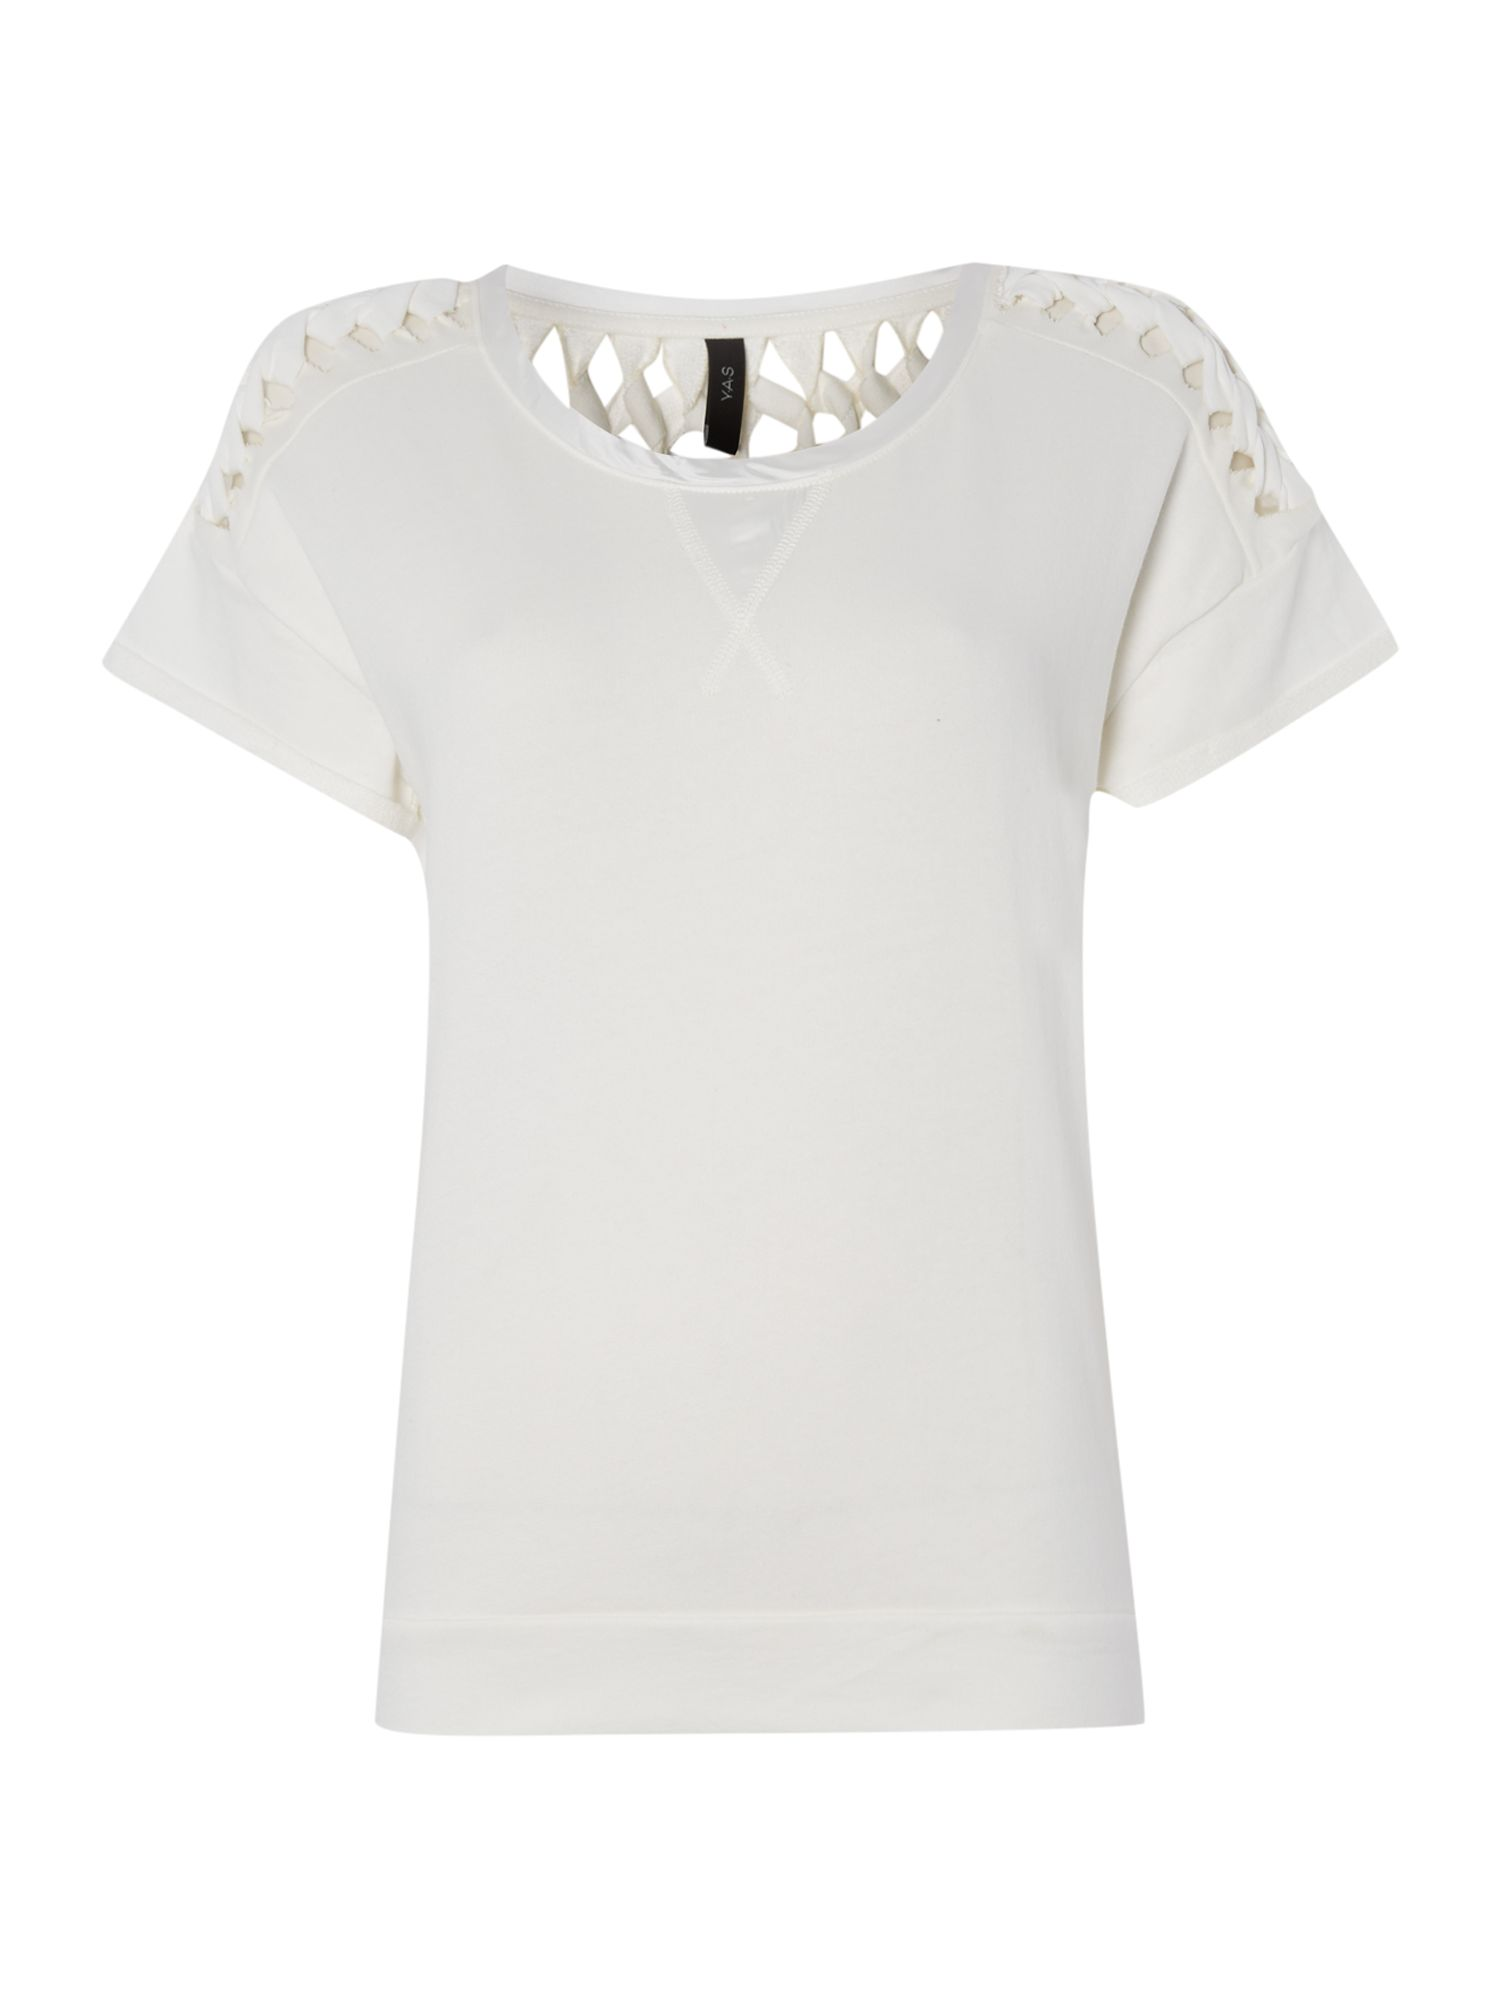 Short sleeve cut out tee